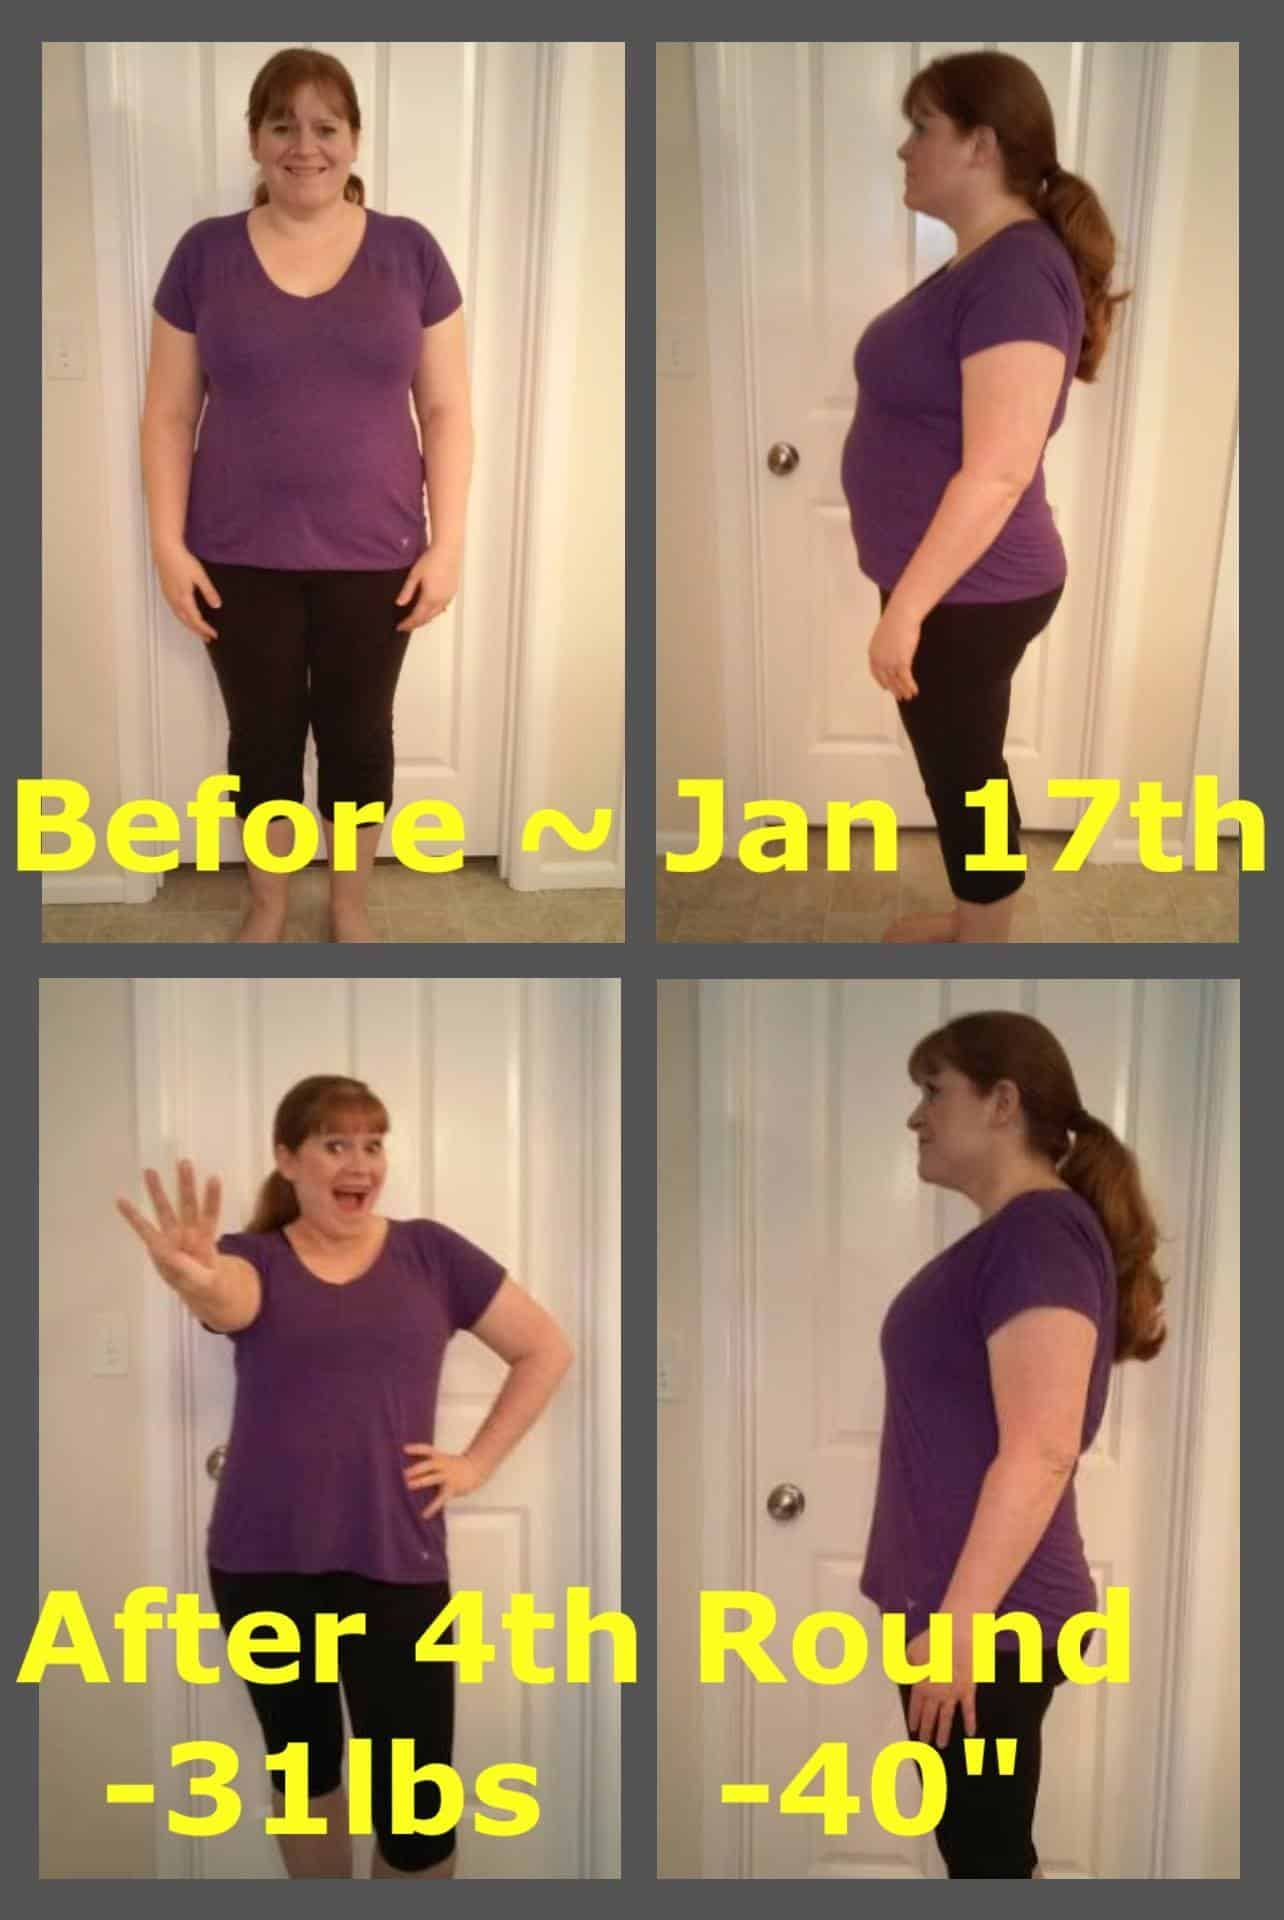 b03e97929d1a0 Transformation Tuesday! Talk about Weight Loss!! - Stacy Rody